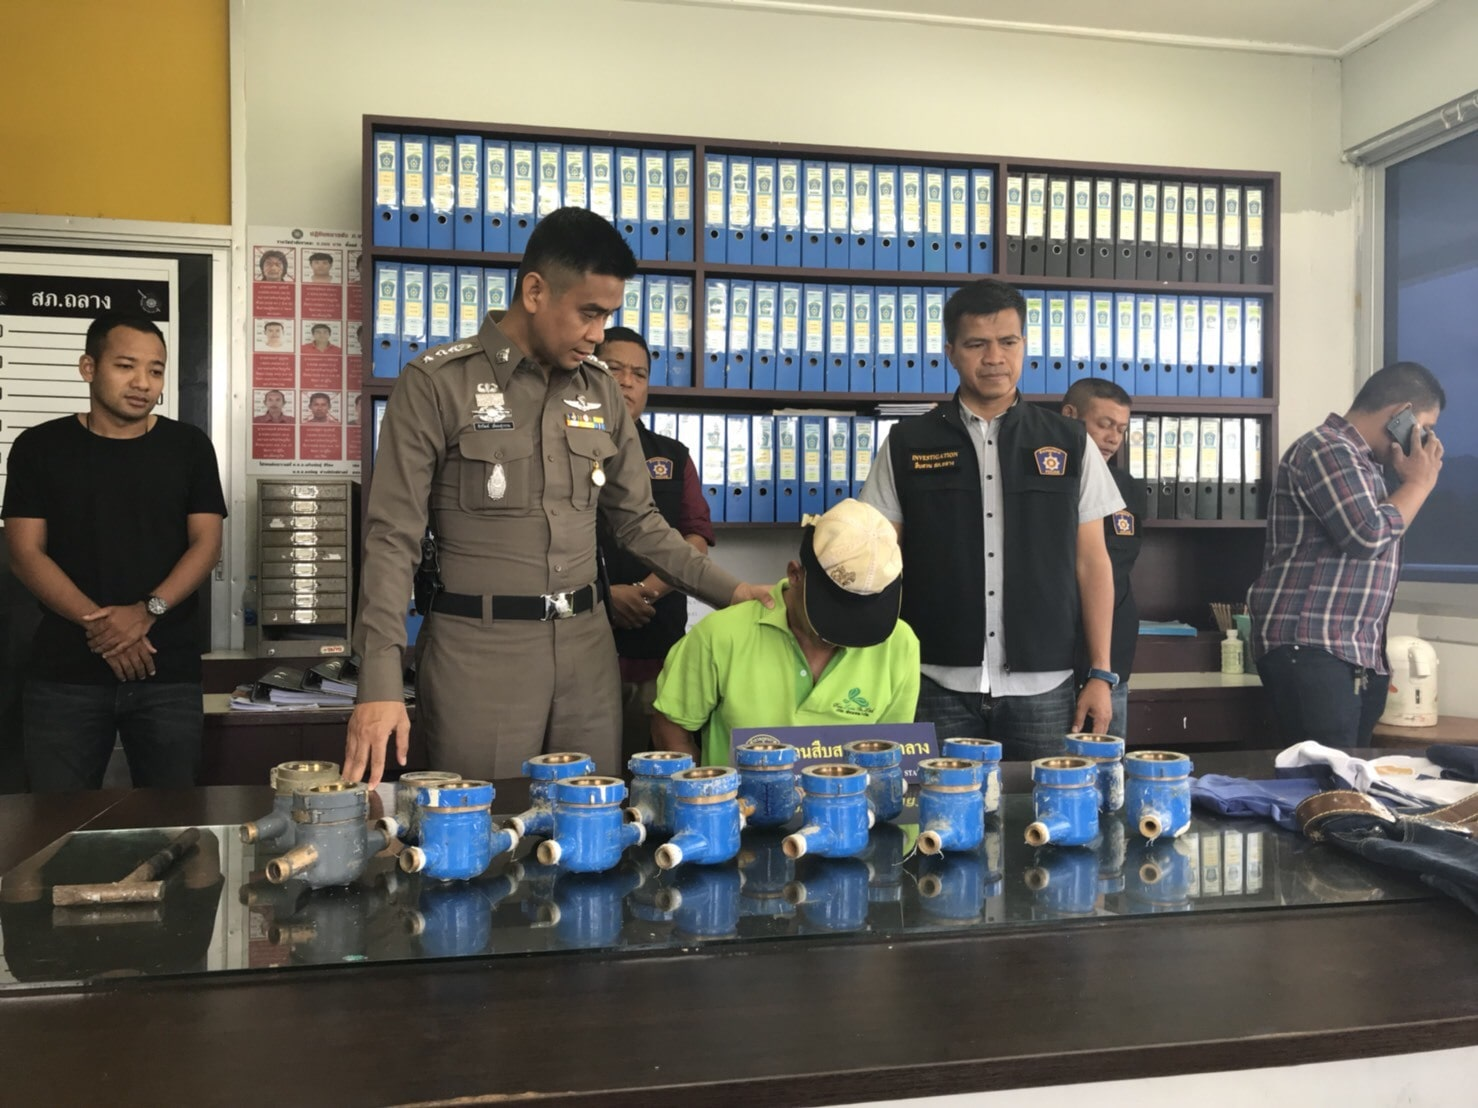 Thalang water meter robber arrested with Kratom | The Thaiger